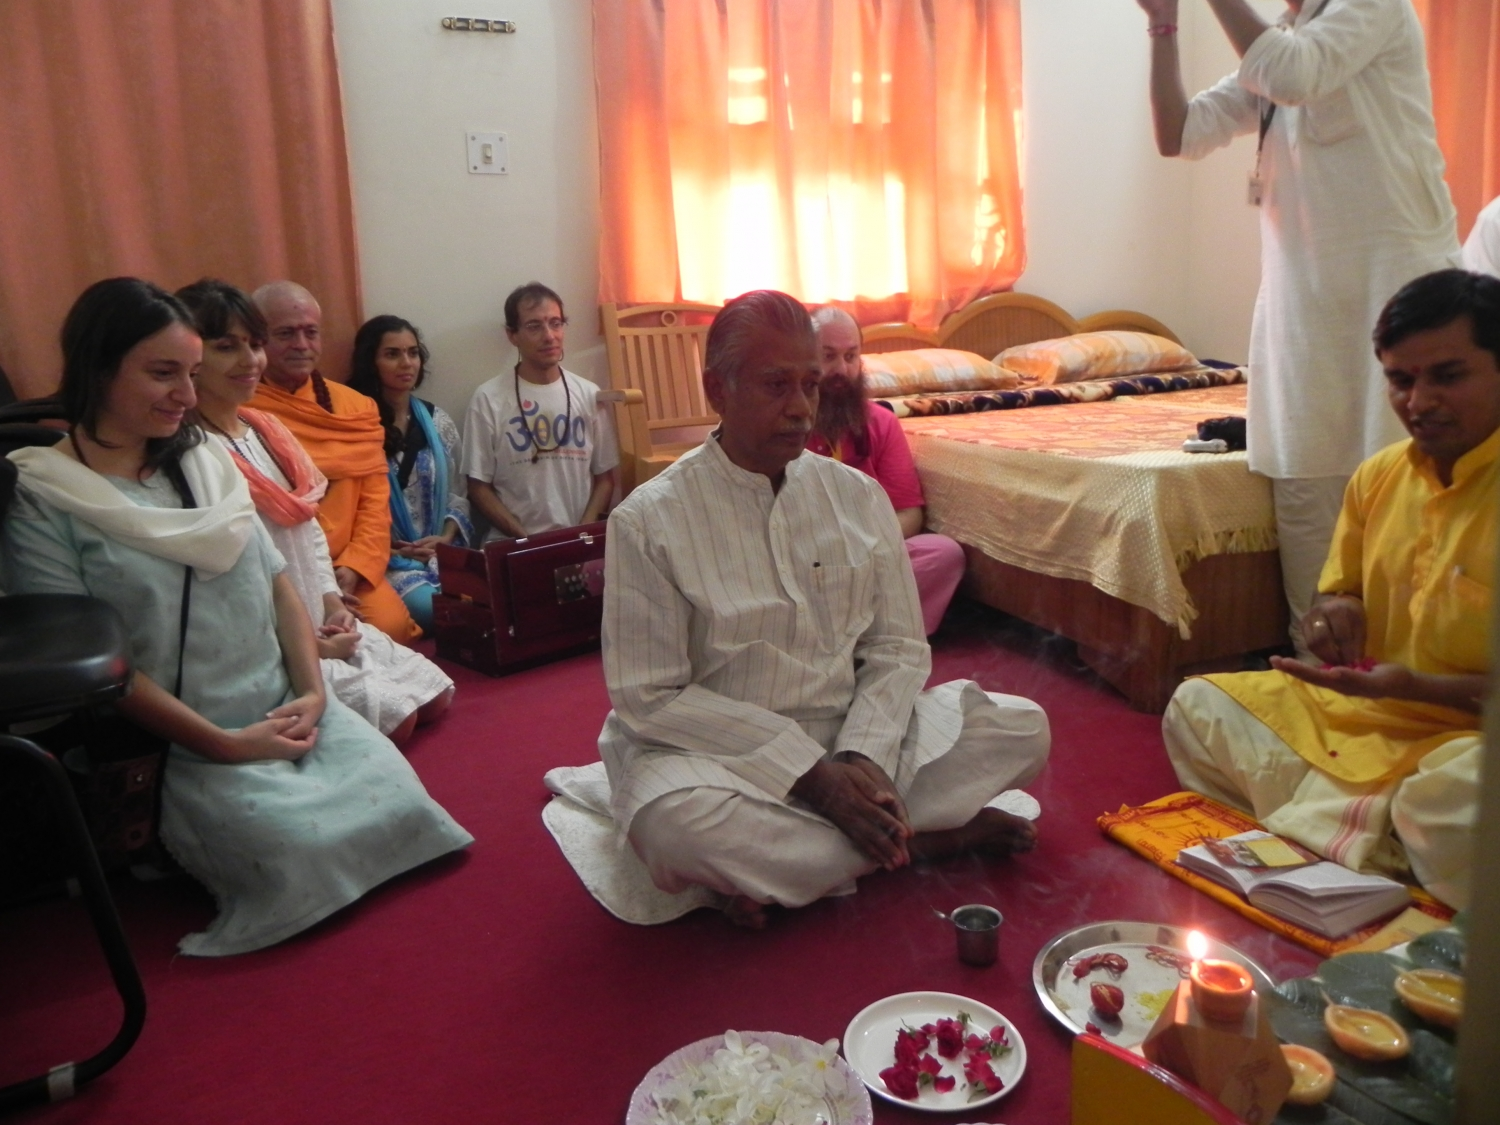 3rd International Festival on Yoga, Culture and Spirituality - Shántikunj Áshrama, Haridvar, Índia - 2012, Outubro, 2 a 6